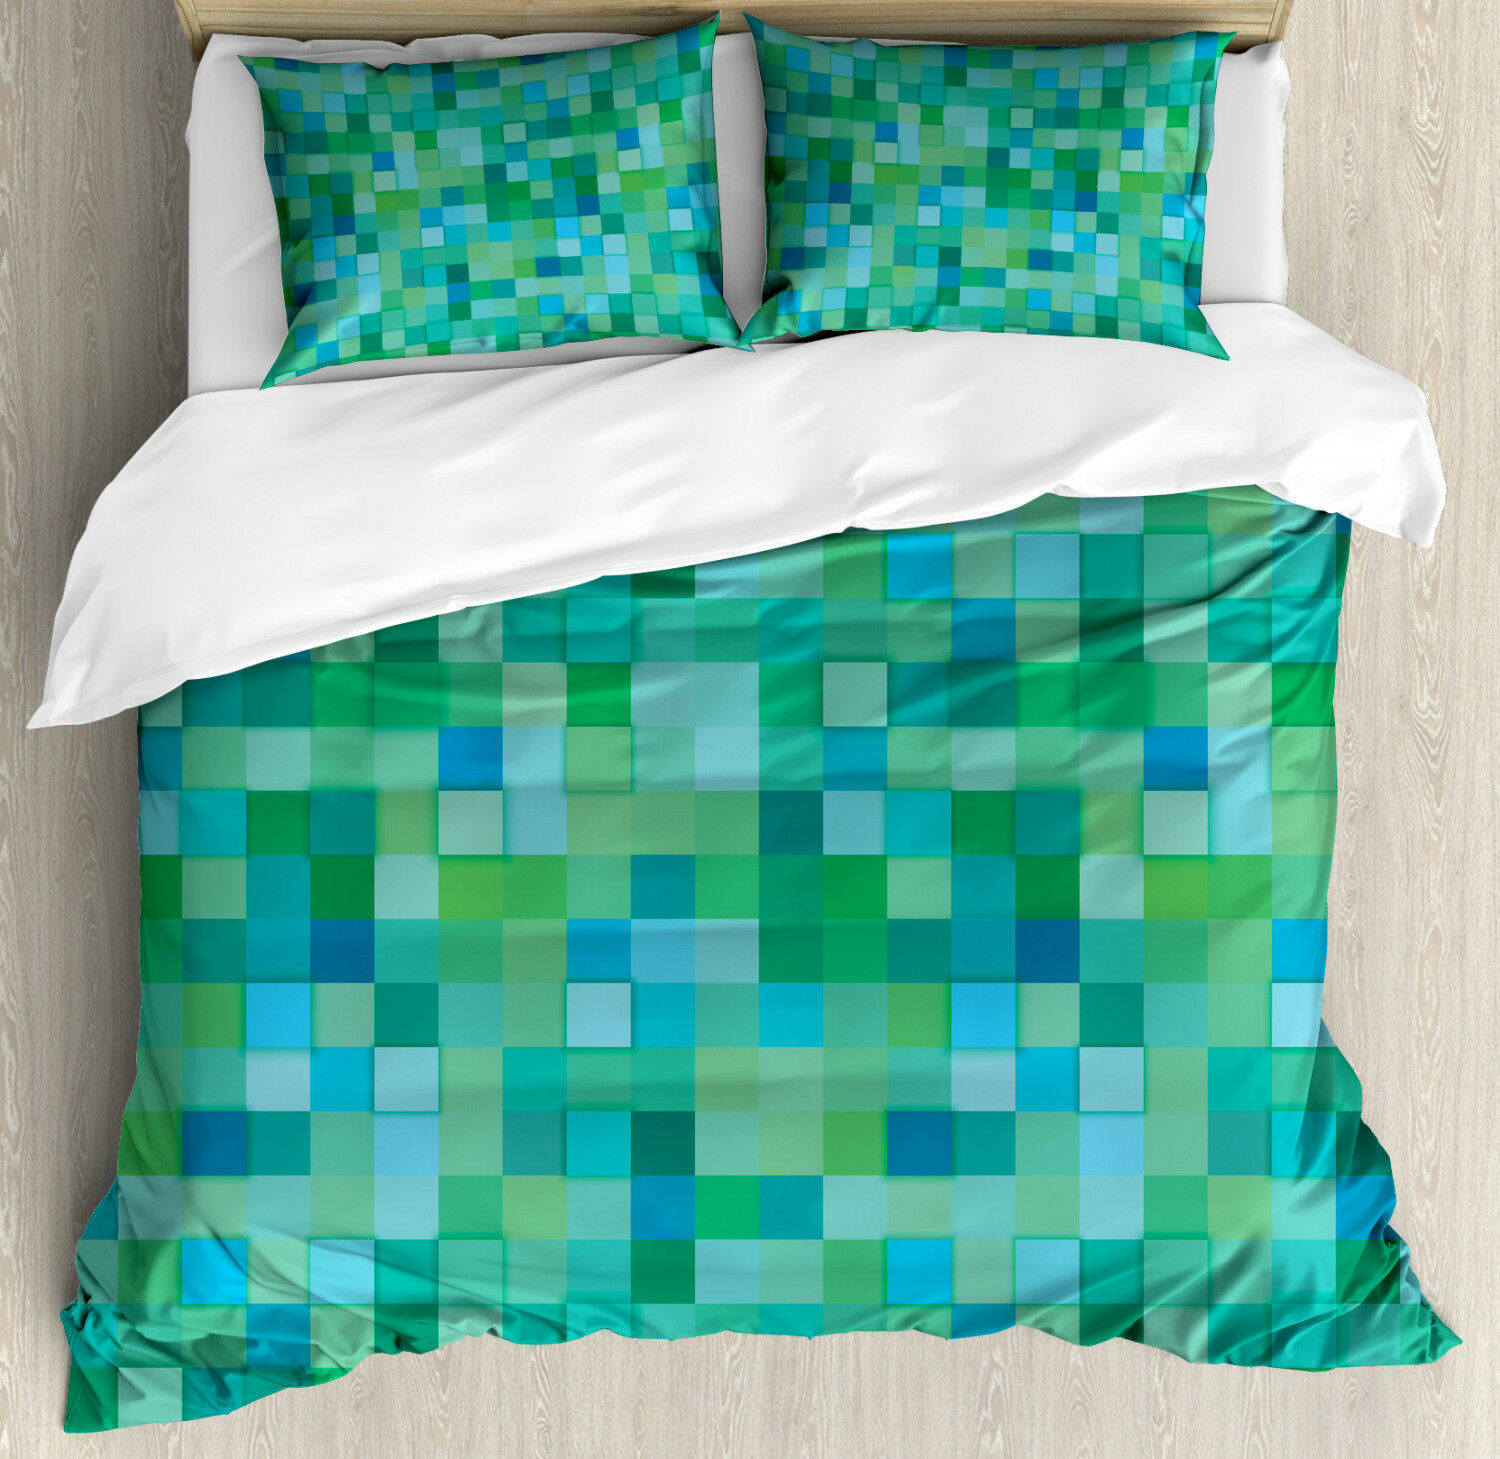 Teal Duvet Cover Set with Pillow Shams Cube Pattern Vibrant color Print